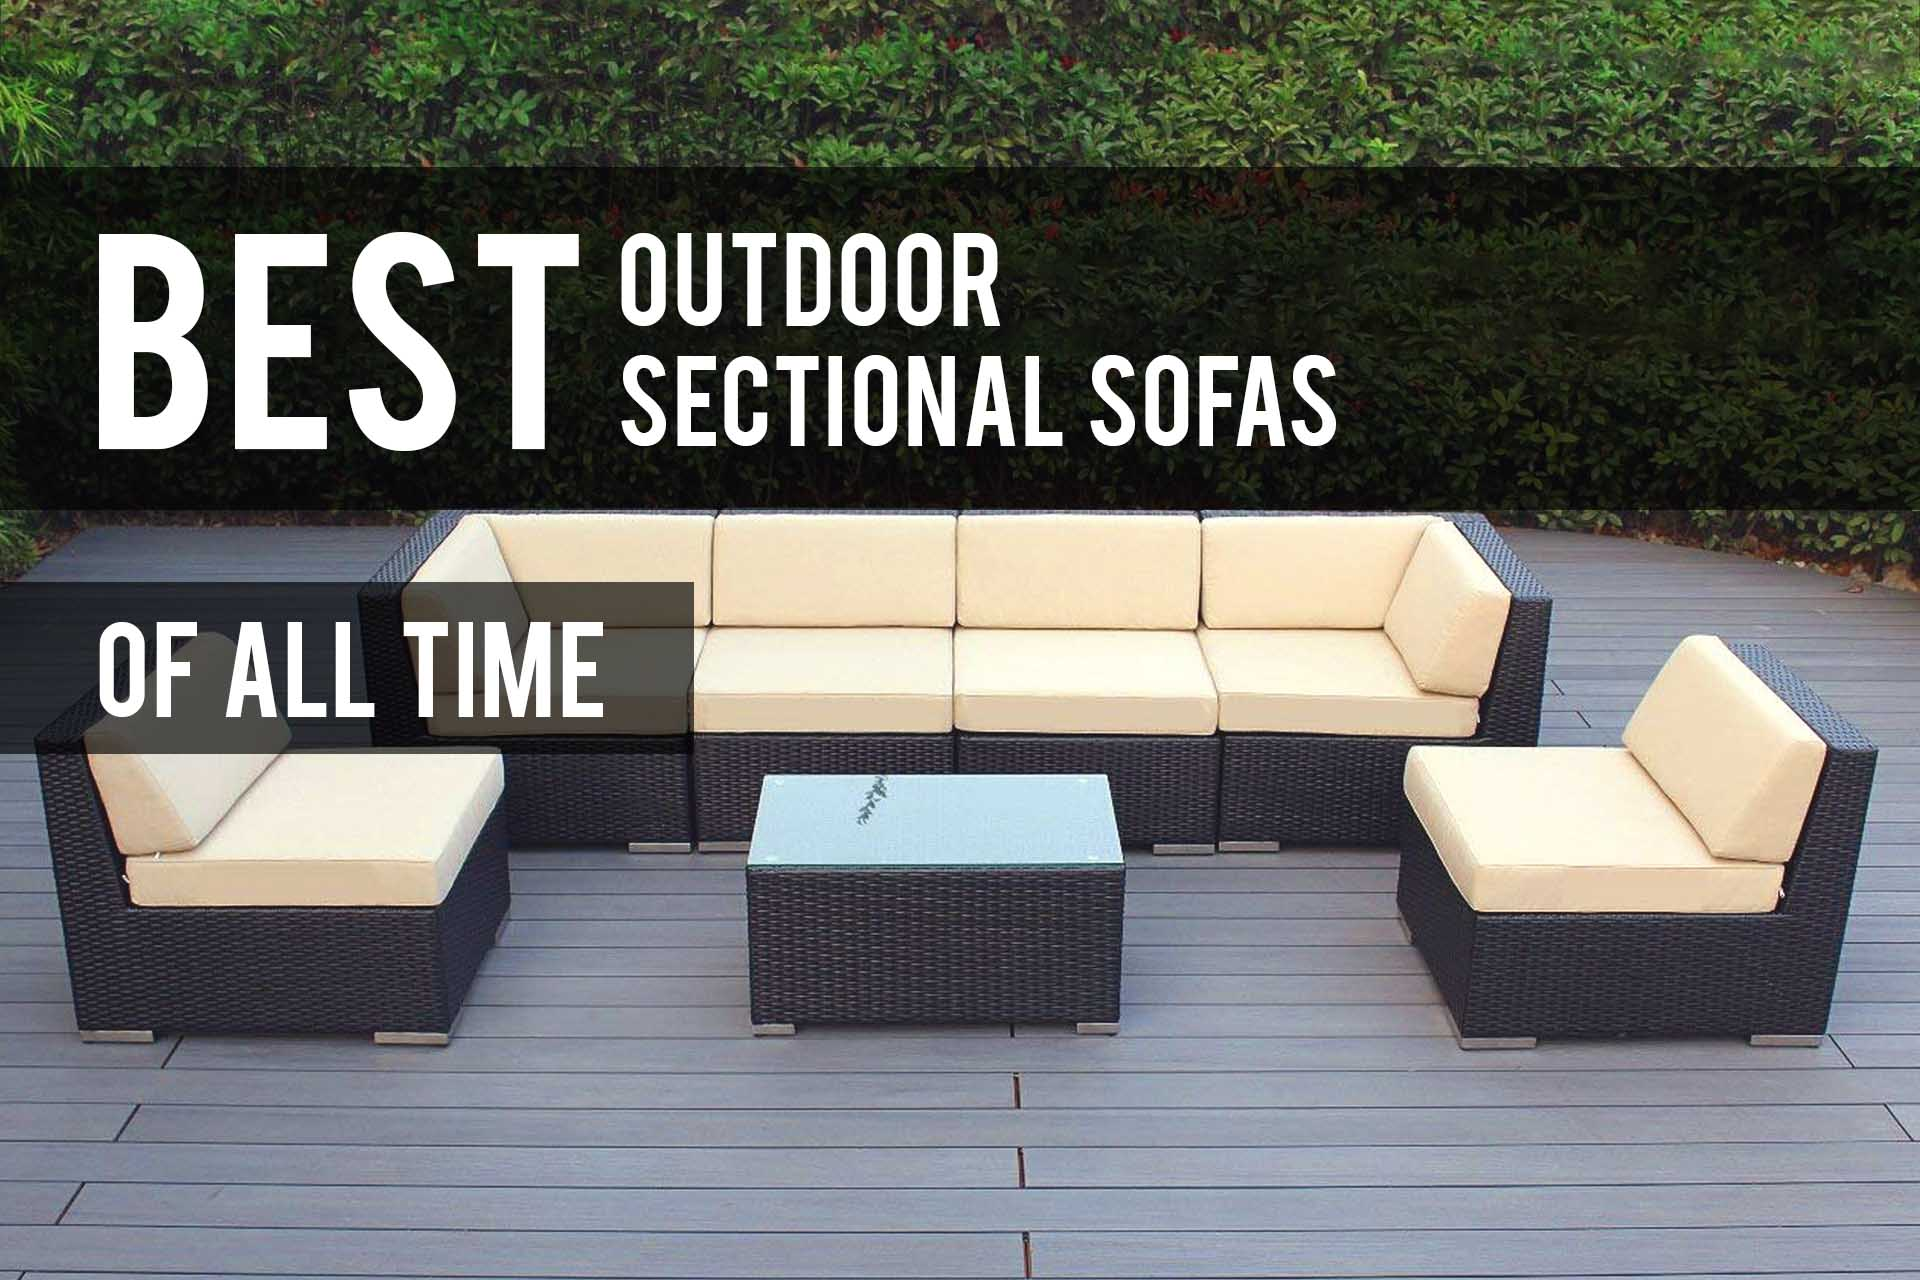 Best Outdoor Sectional Sofa Sets 2019 (Reviews) - The Patio Pro